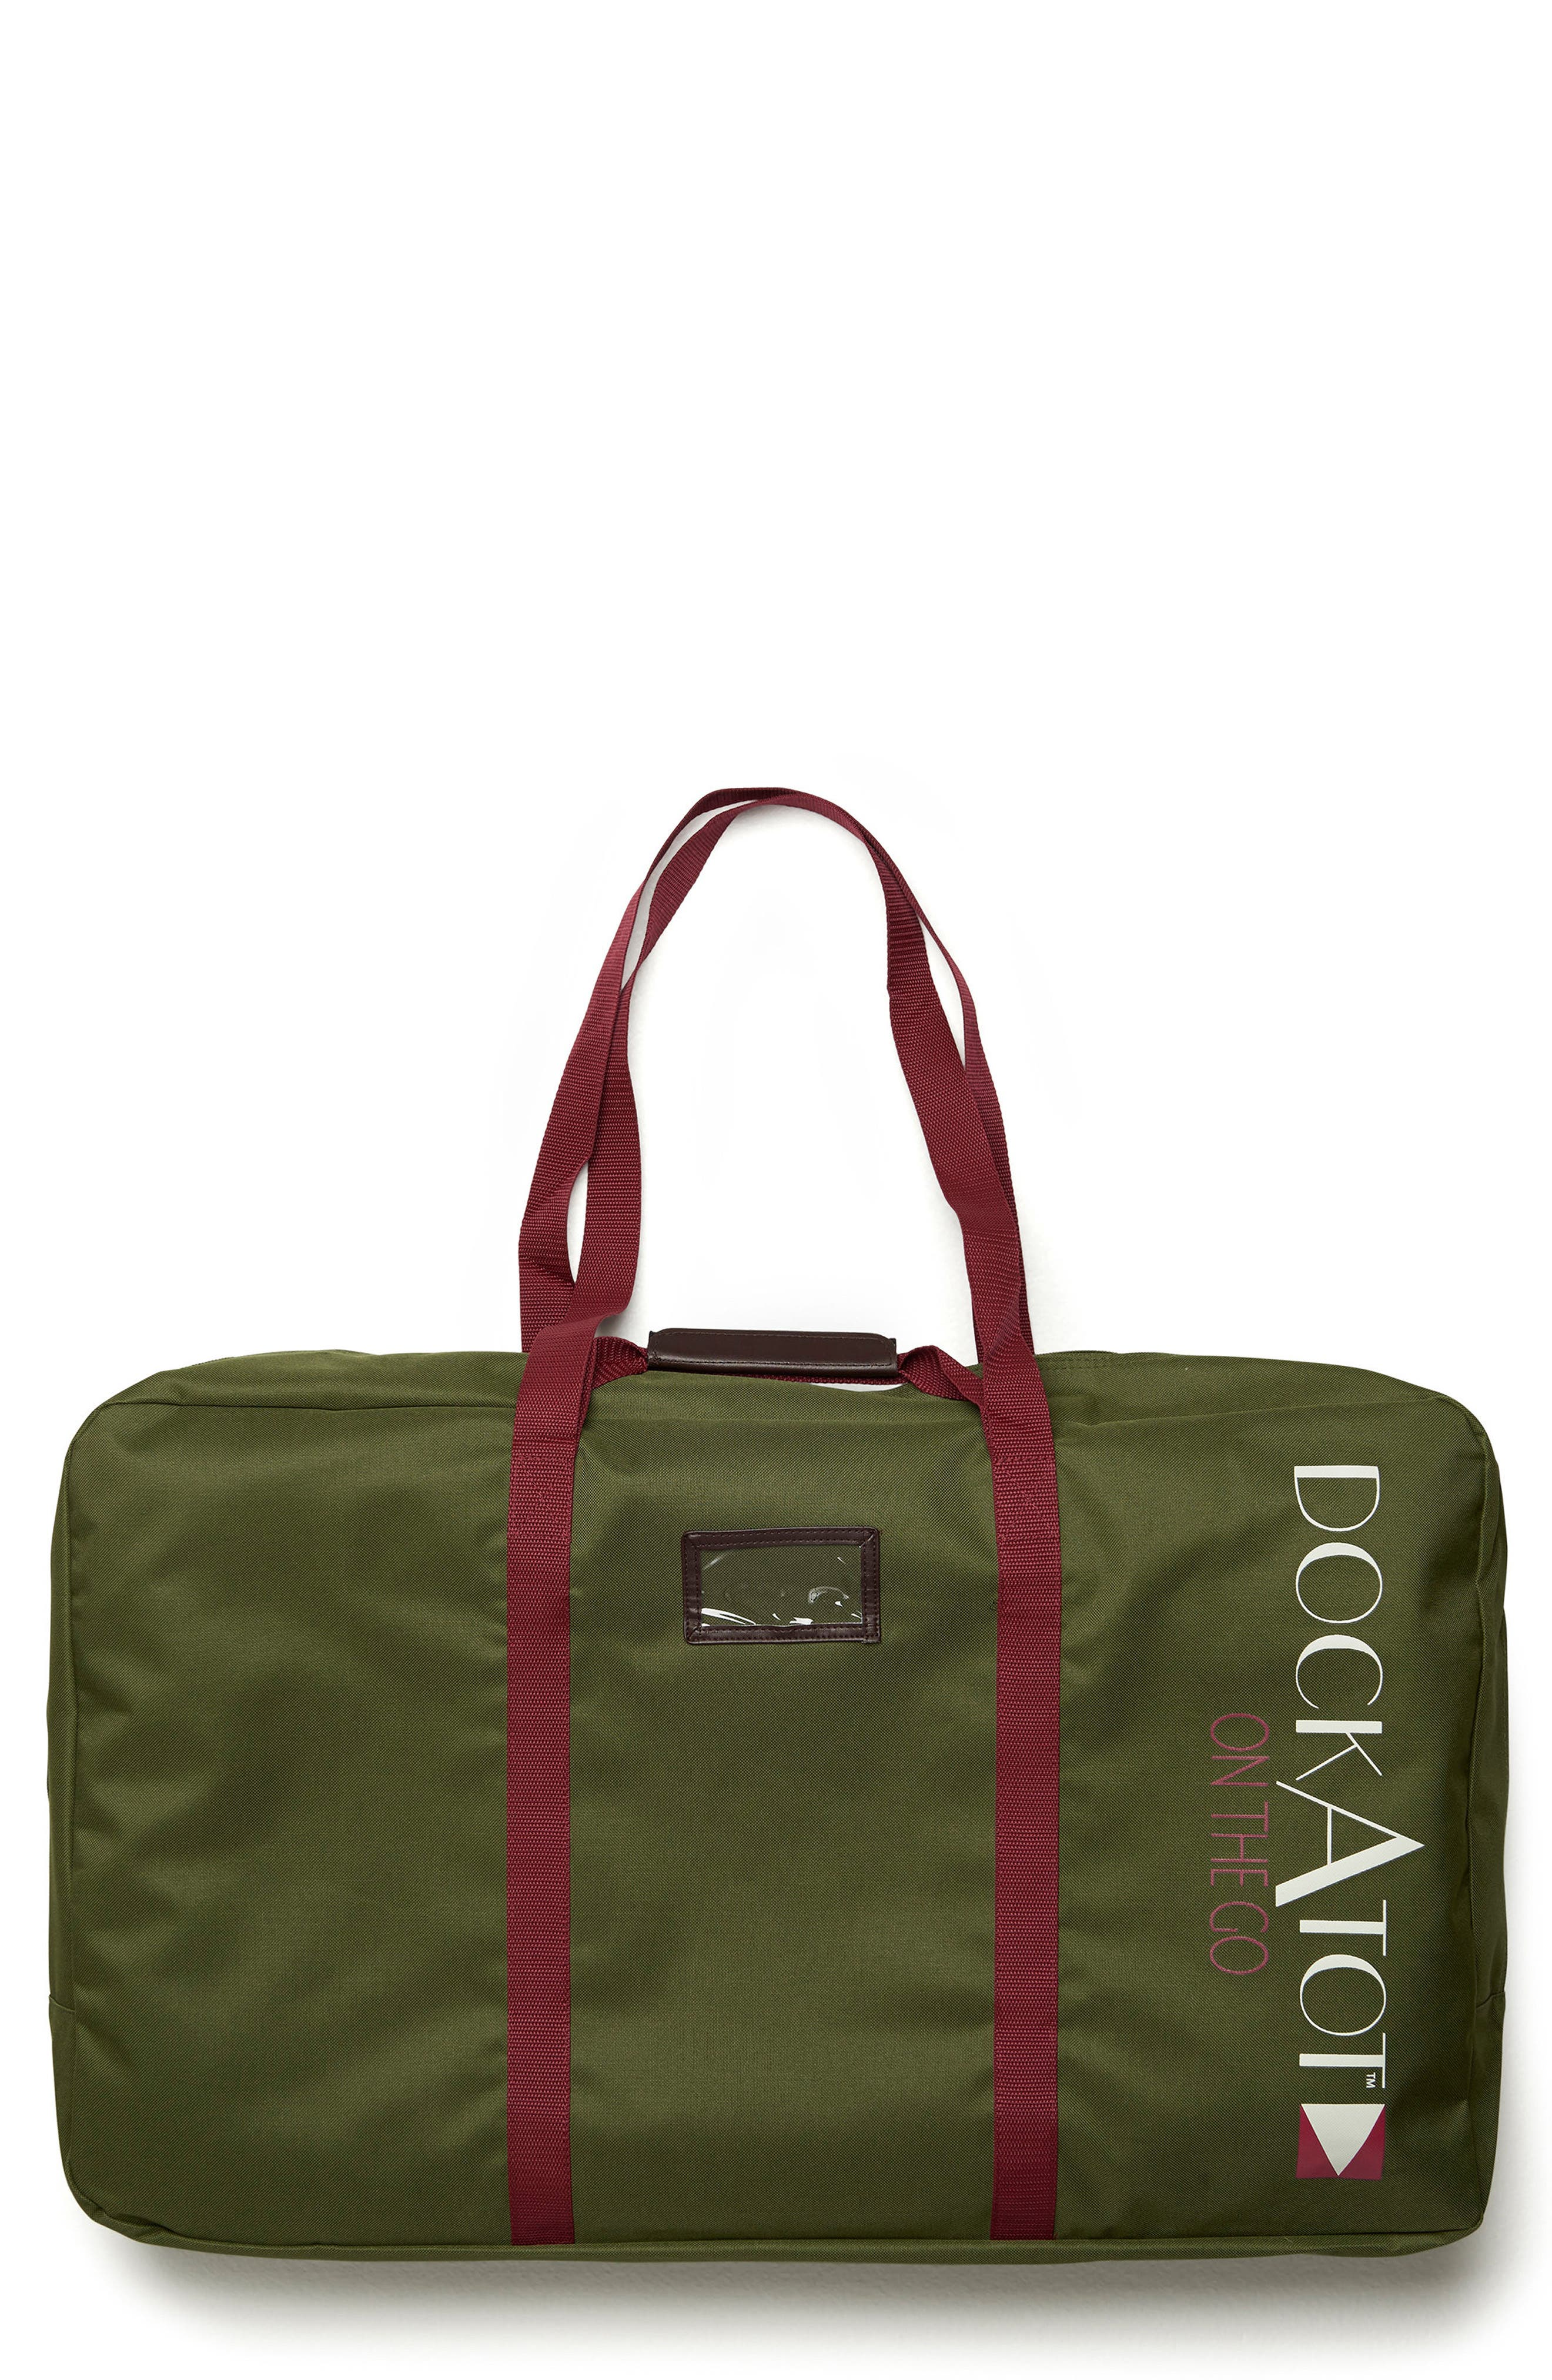 Deluxe Transport Bag,                             Main thumbnail 1, color,                             MOSS GREEN